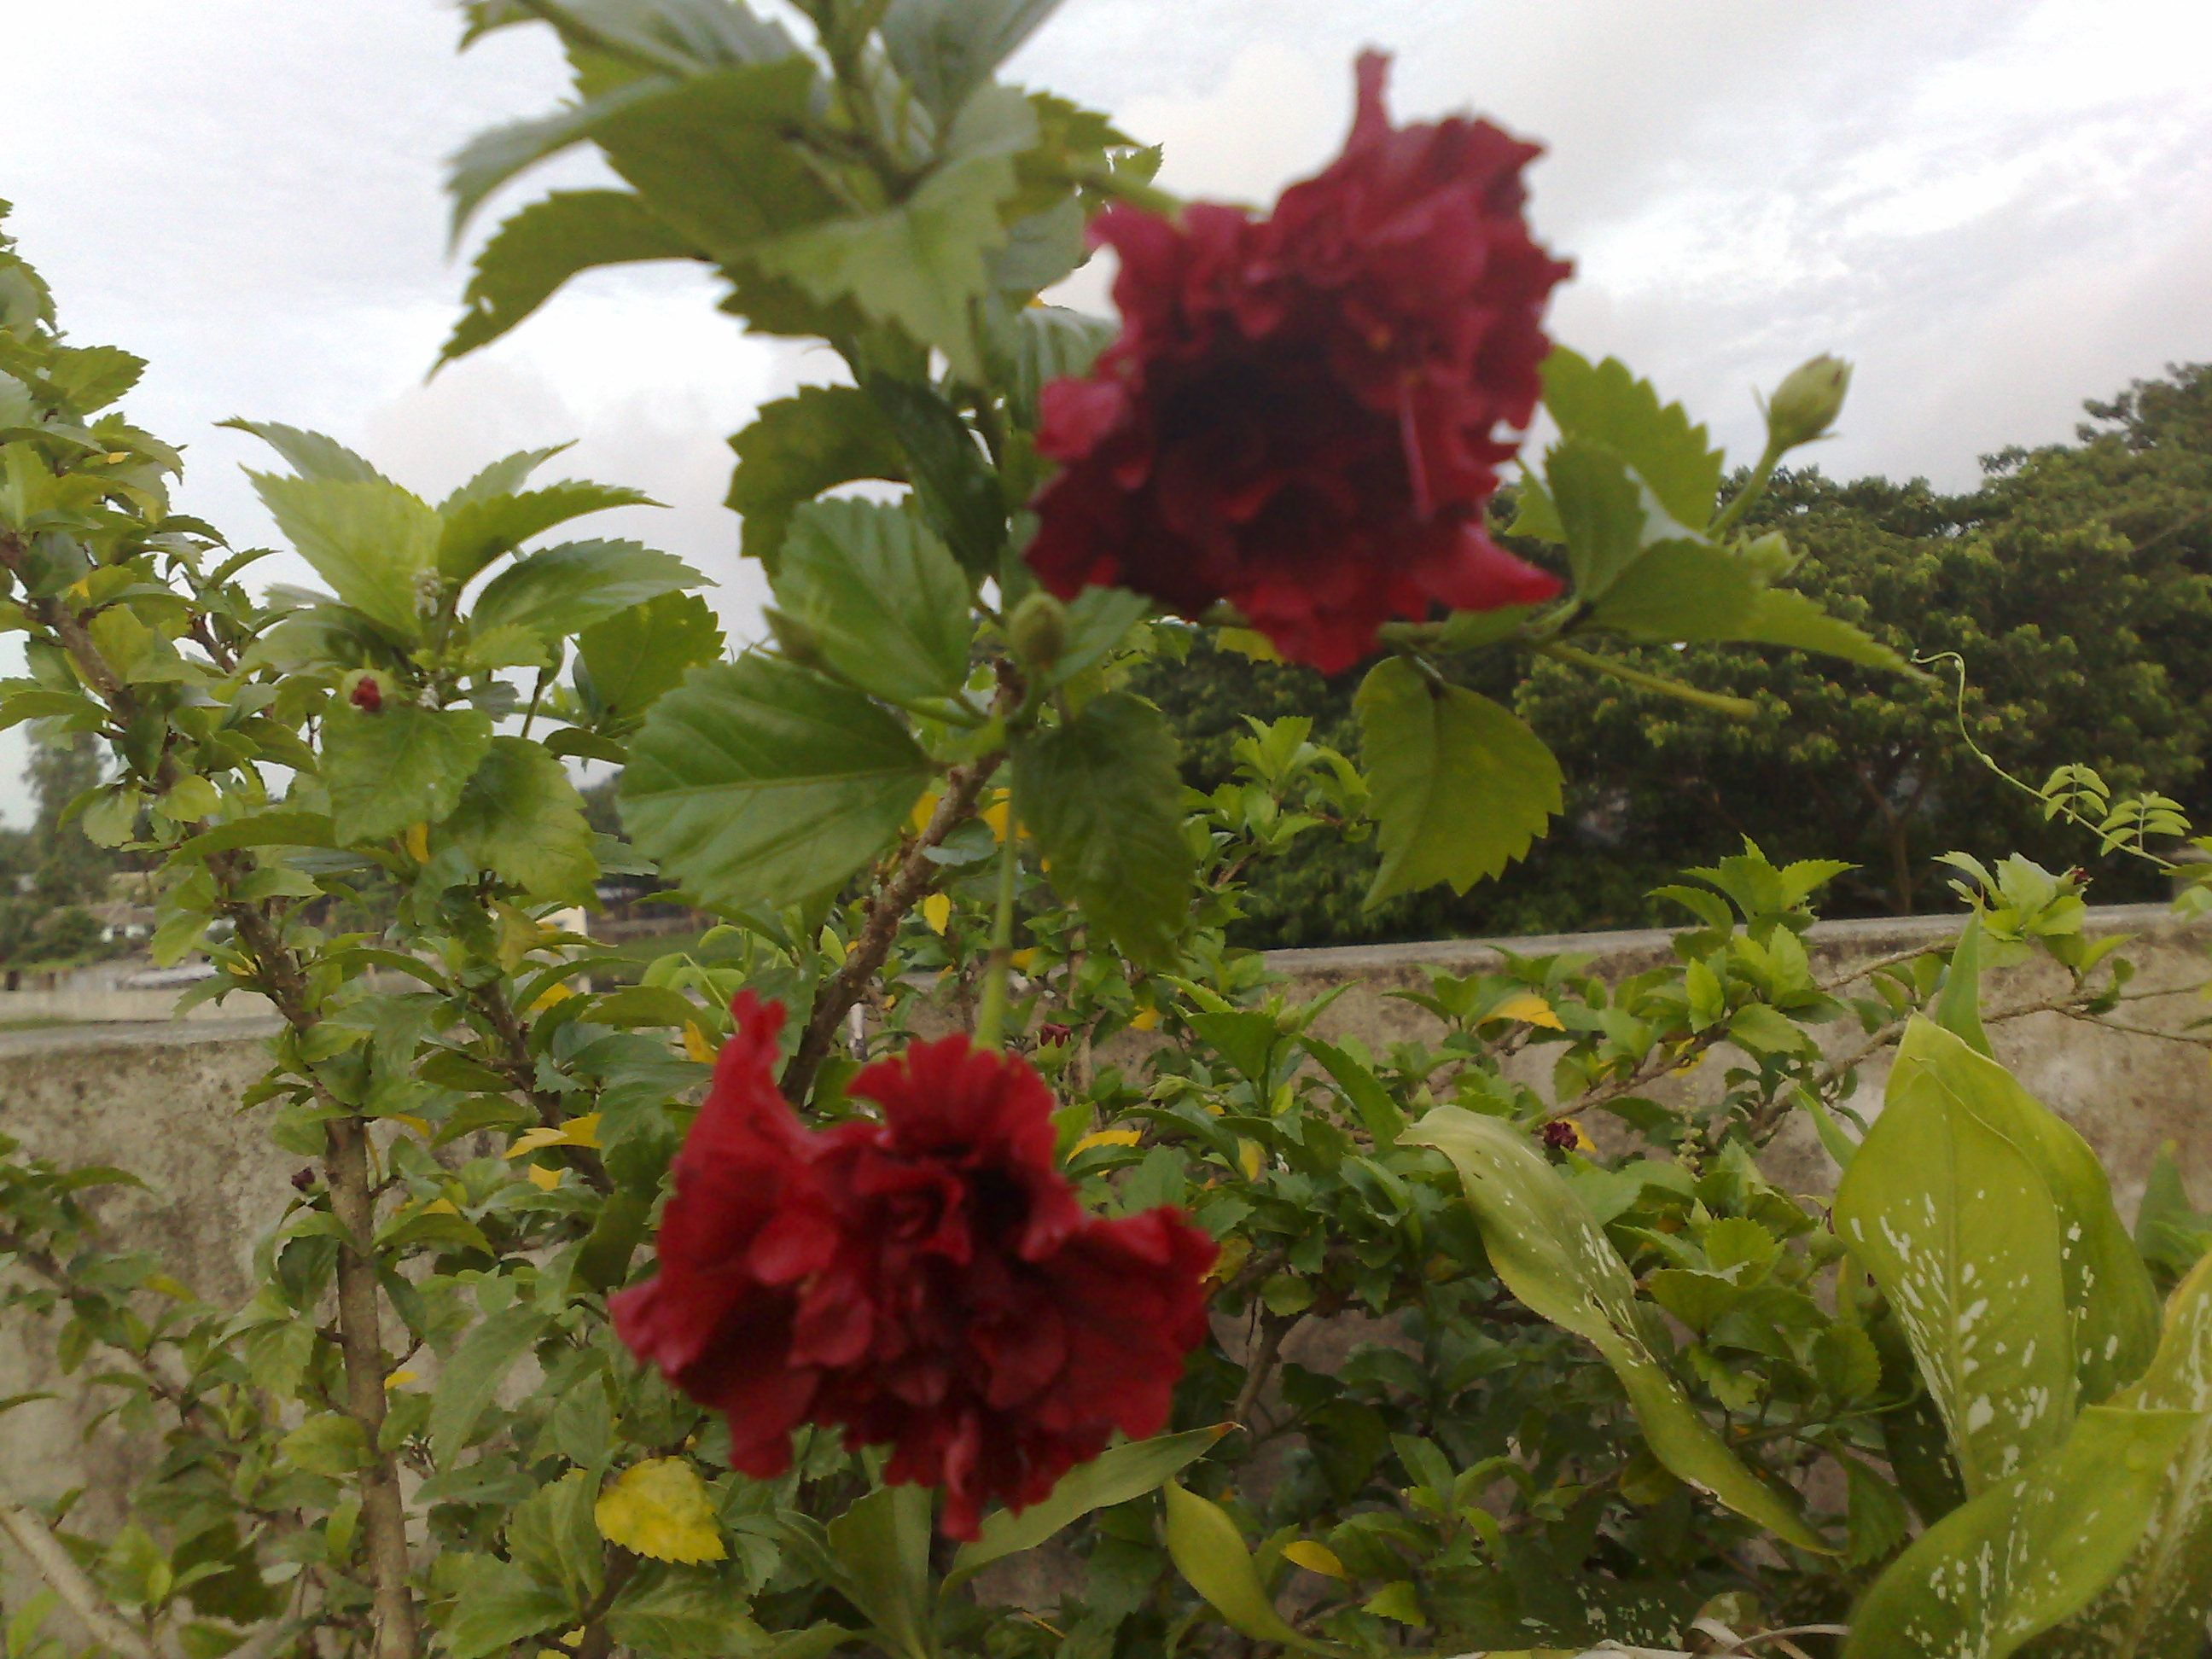 The Flowers Of Hibiscus Rosa Sinensis Are Edible And Are Used In Salads In The Pacific Islands The Flower Is Additiona Hibiscus Rosa Sinensis Dark Pink Flowers